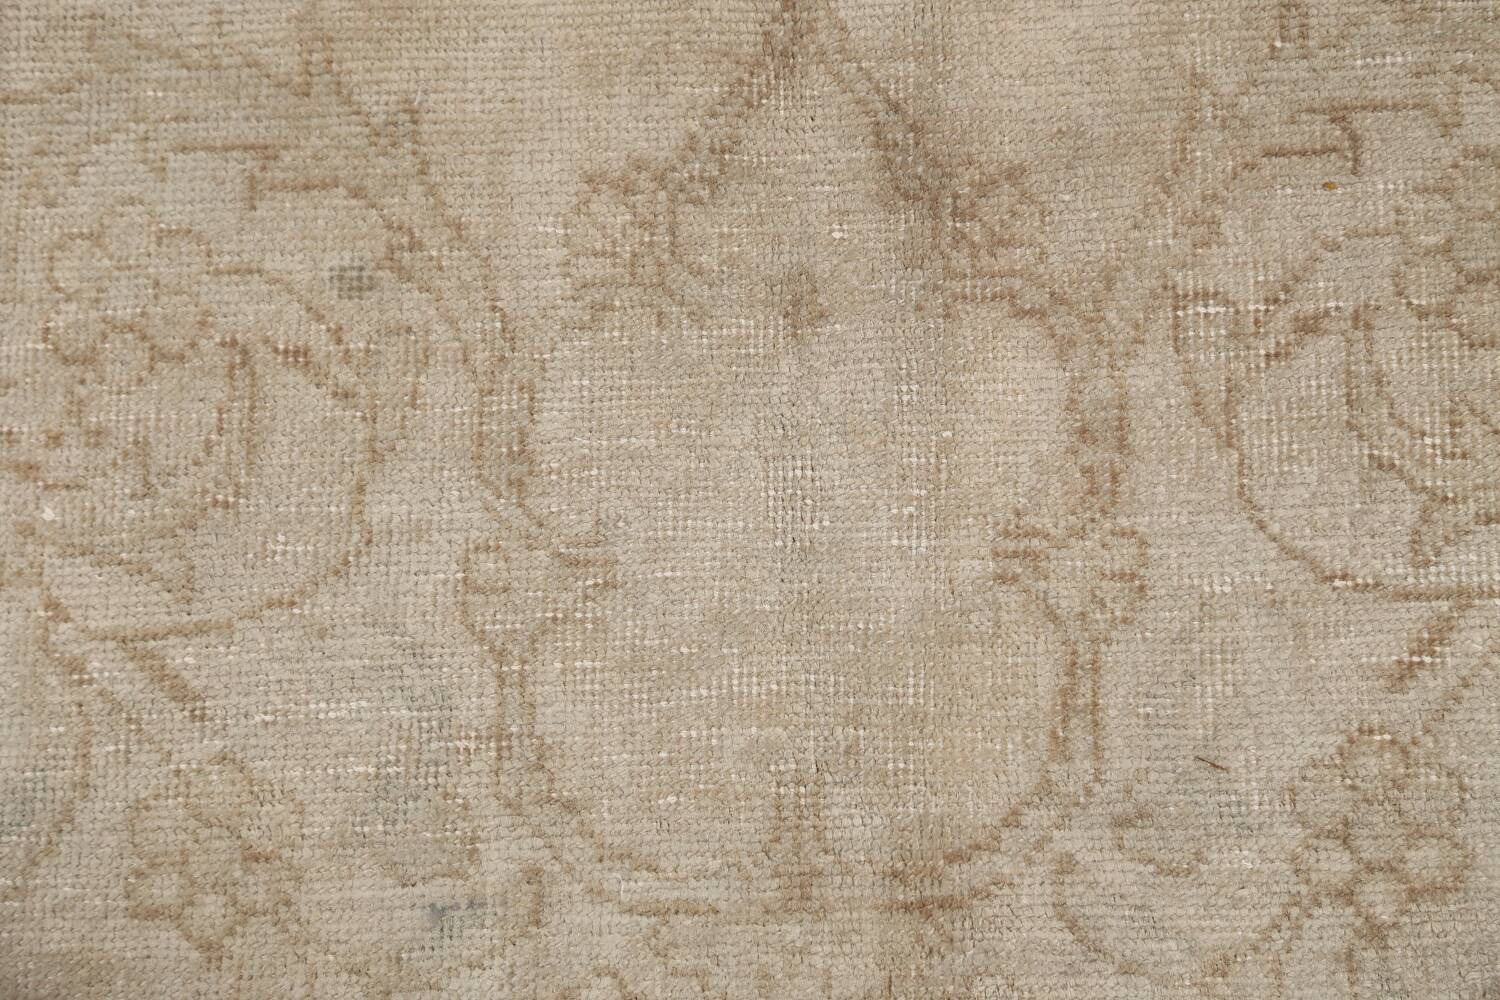 Antique Muted Floral Tabriz Persian Area Rug 7x11 image 9